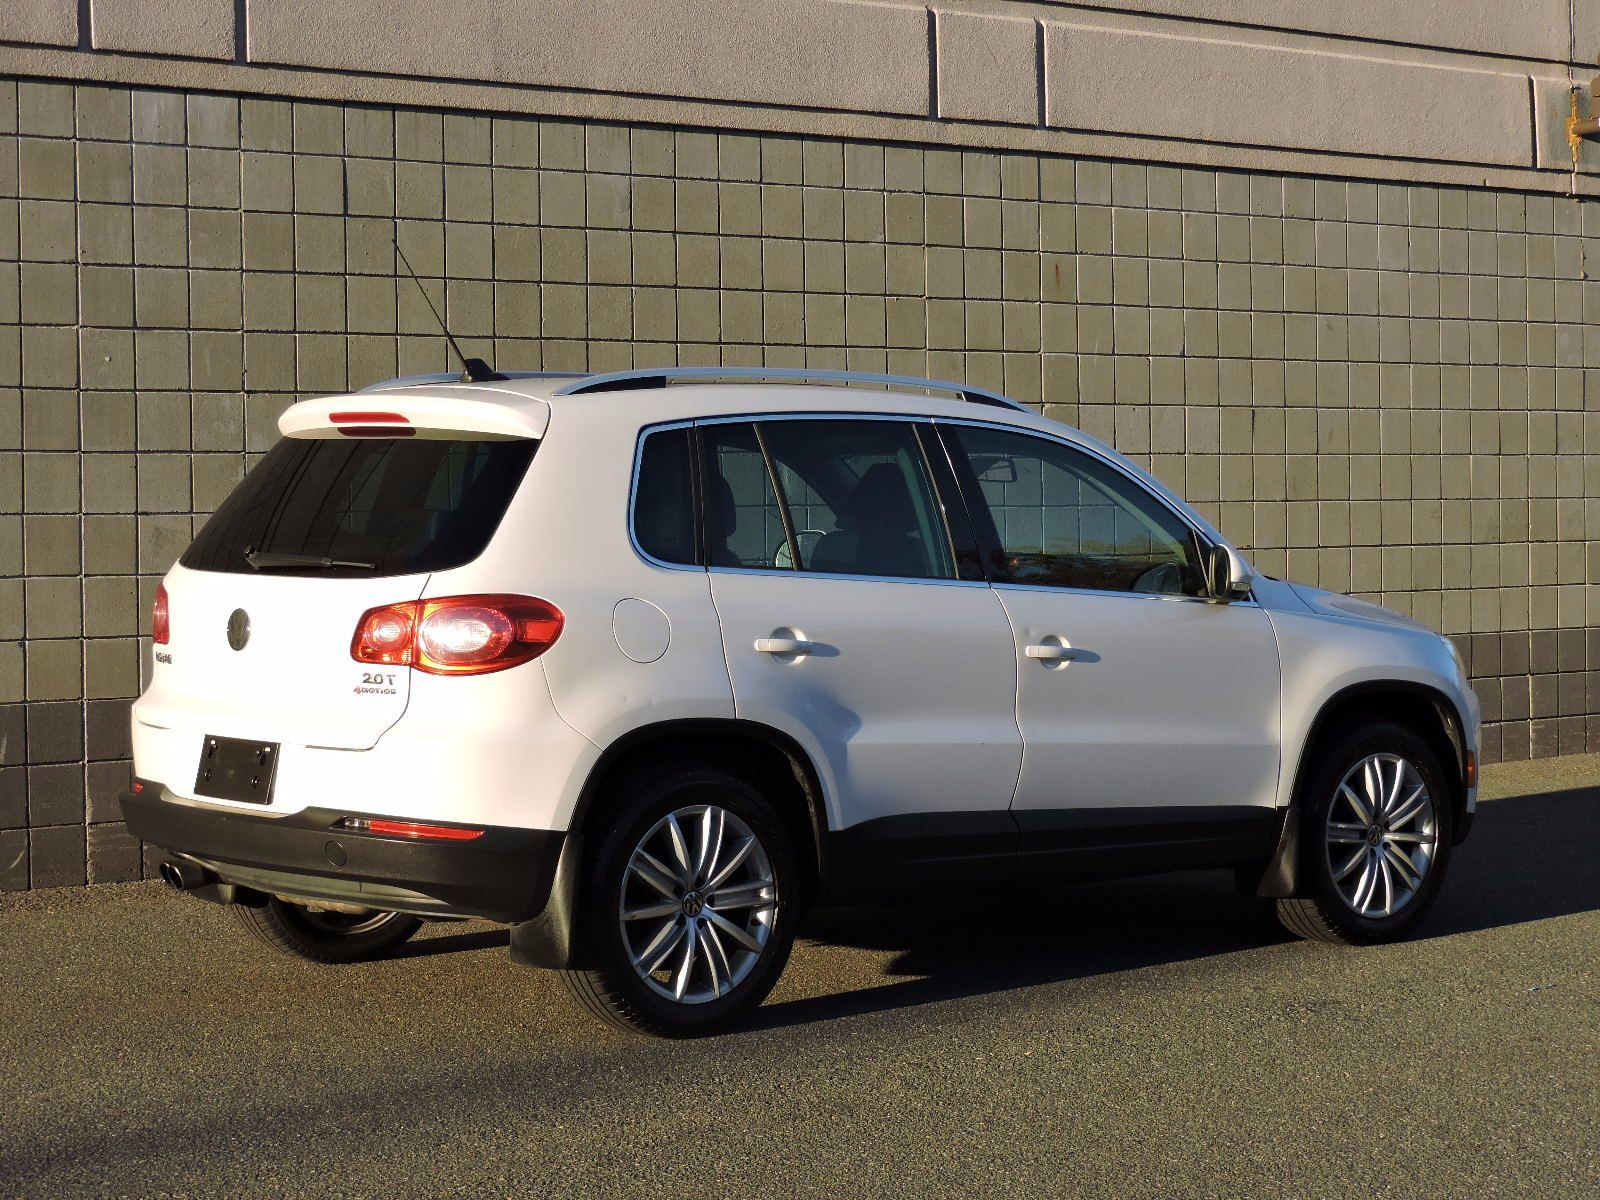 Used 2011 Volkswagen Tiguan SE 4Motion wSunroof & Navi at Auto House USA Saugus